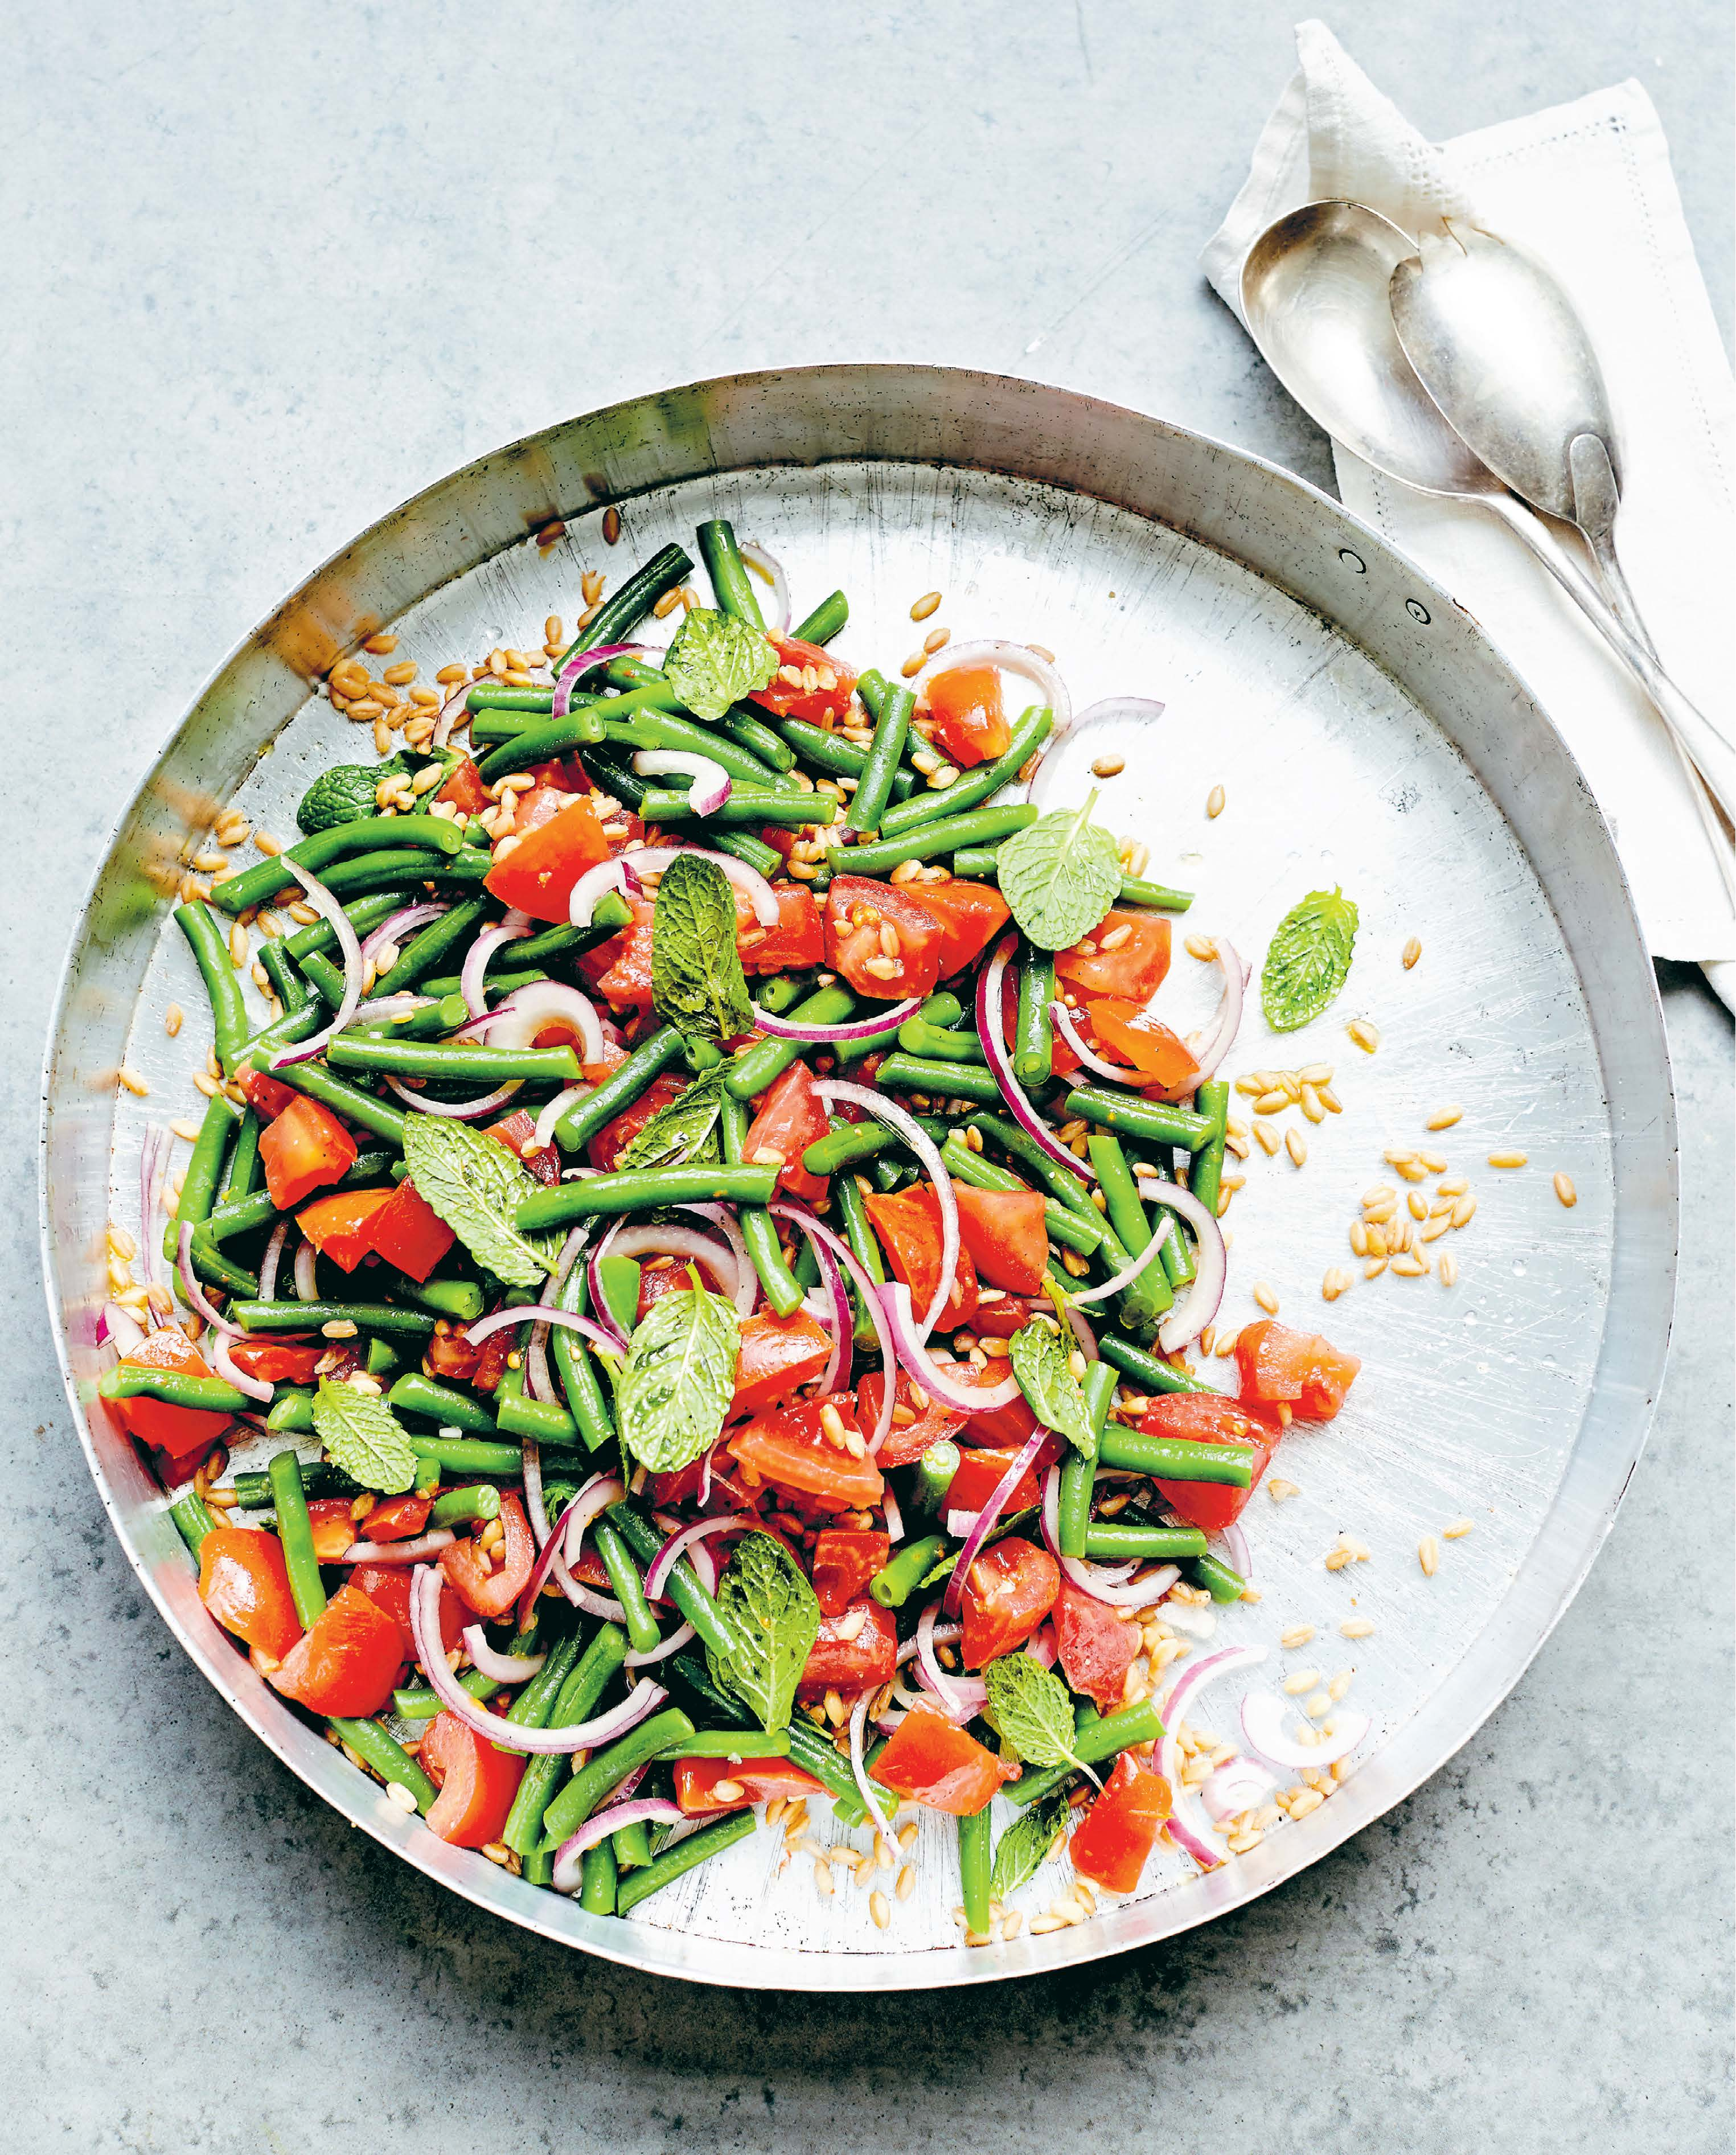 Tomato and green bean salad